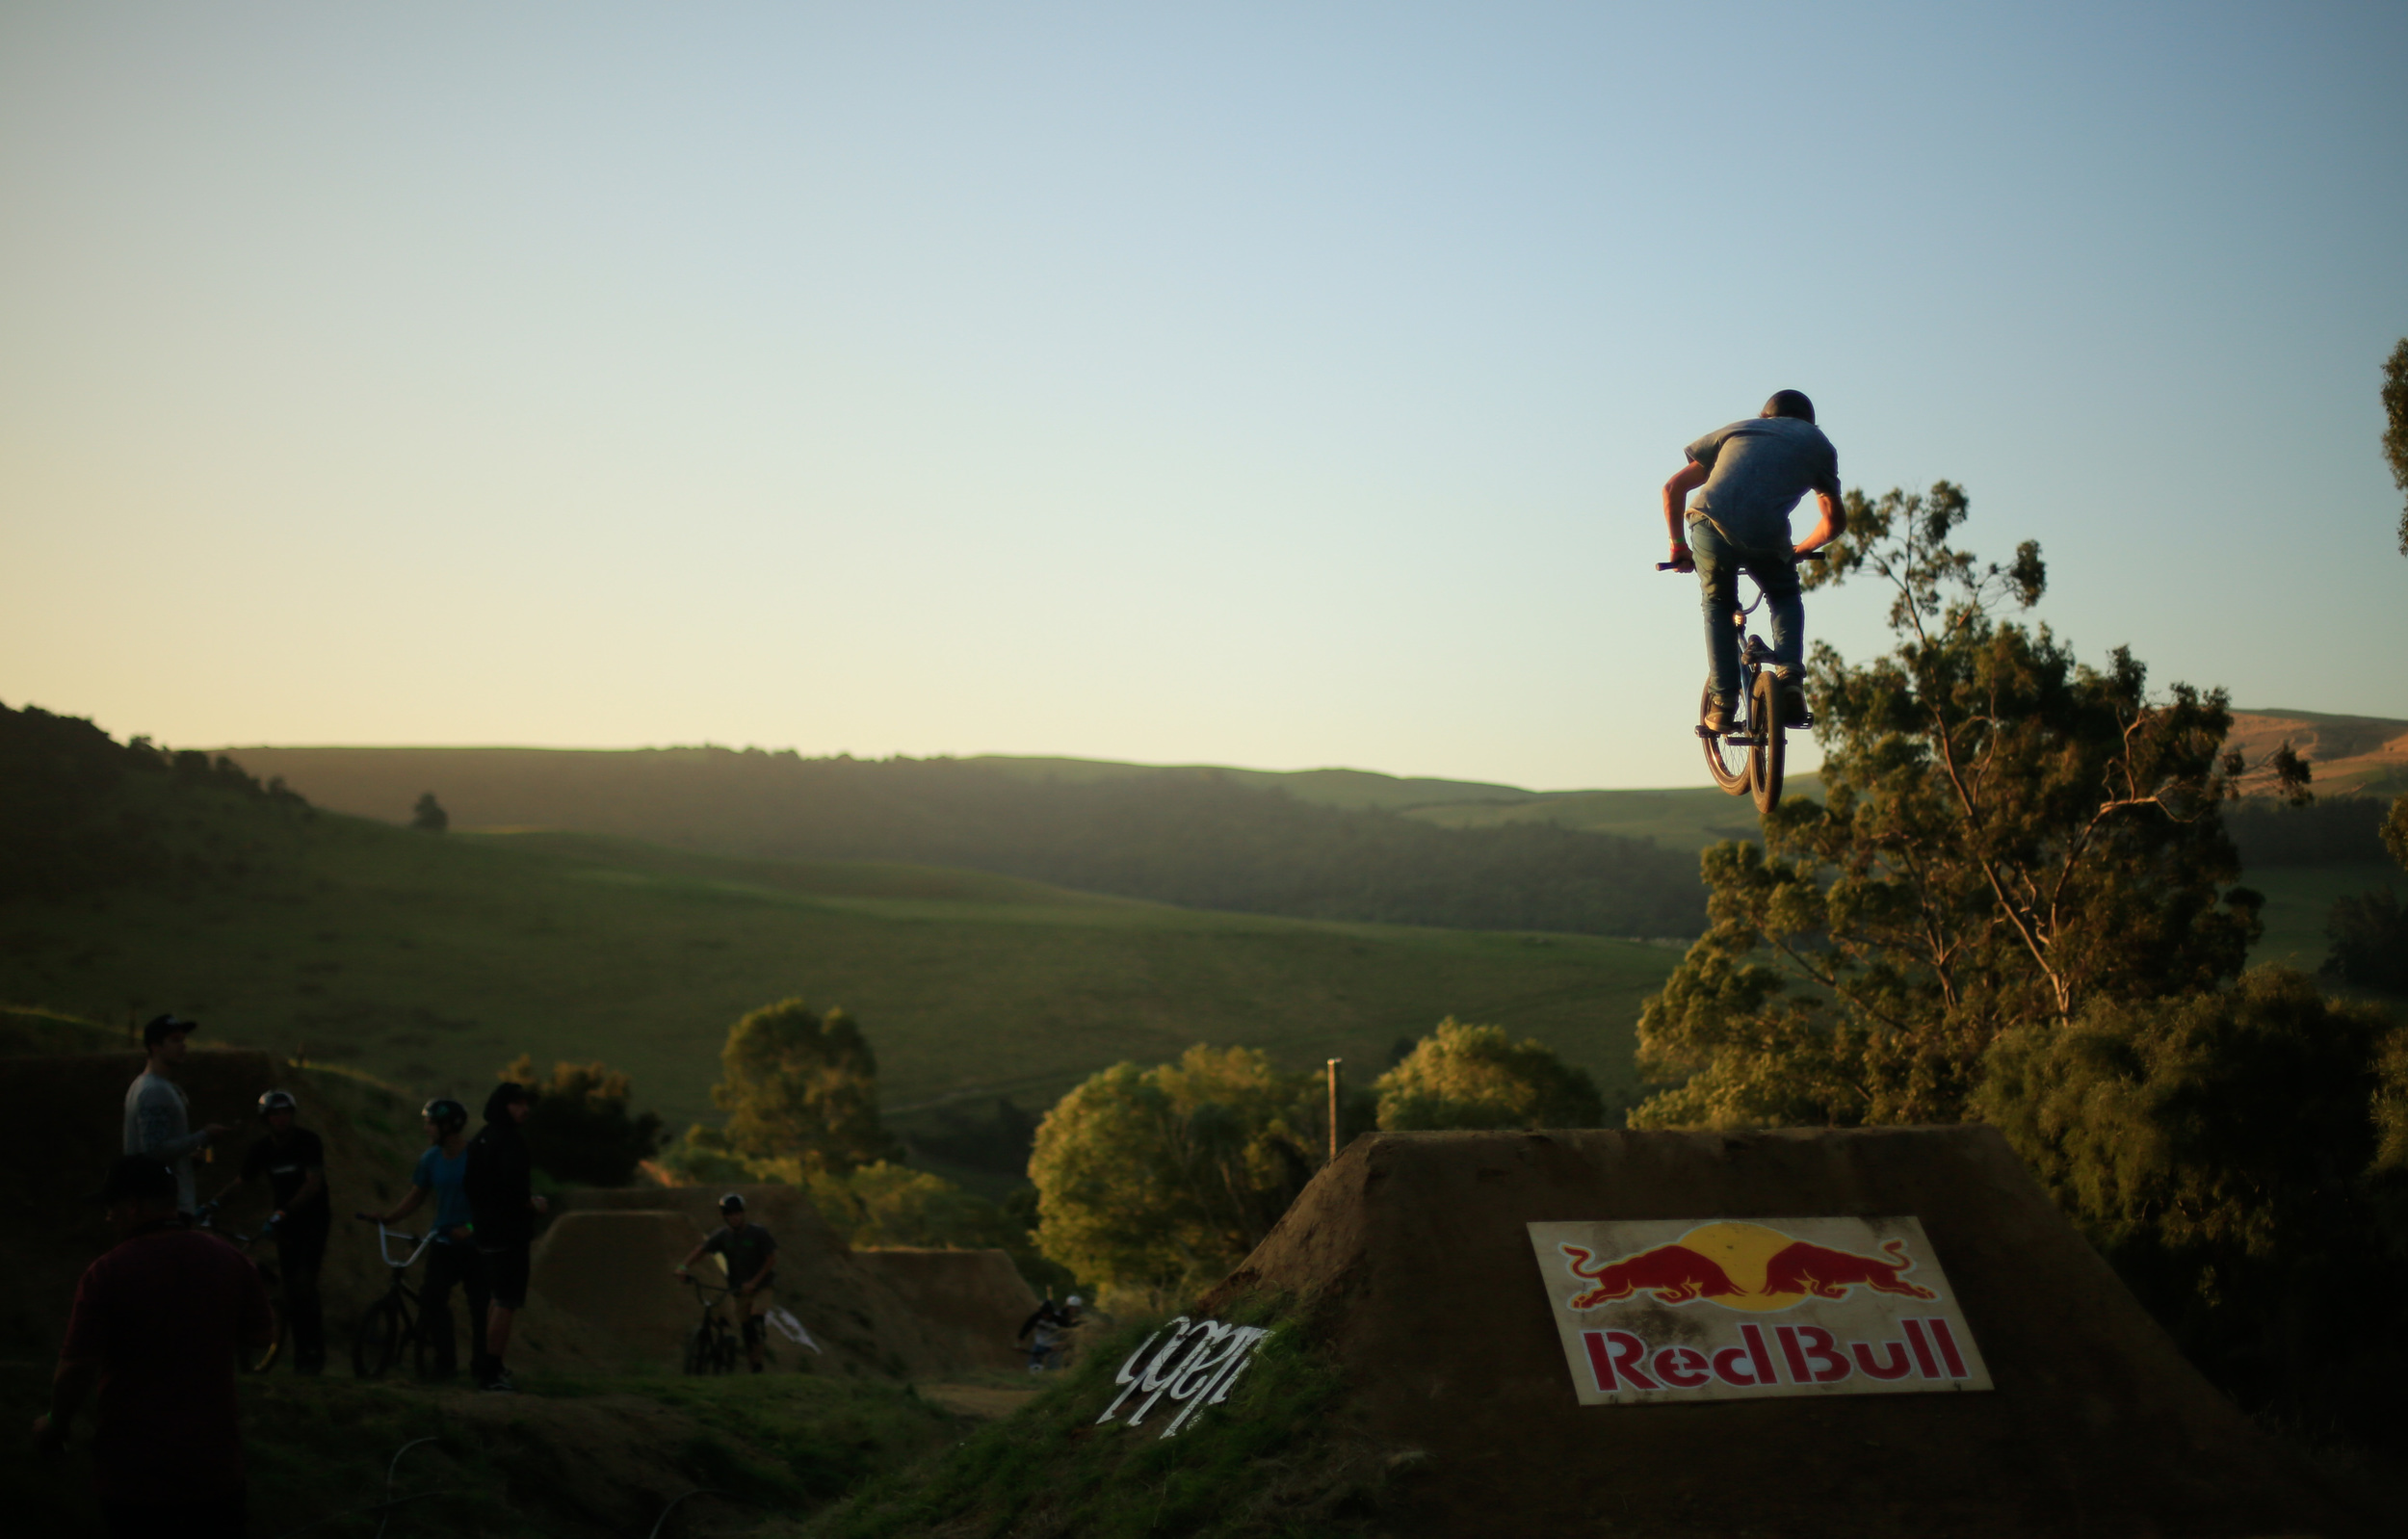 Around 40 riders competed between 3 divisions: the Bros, the Pros, and Mountain bikes.